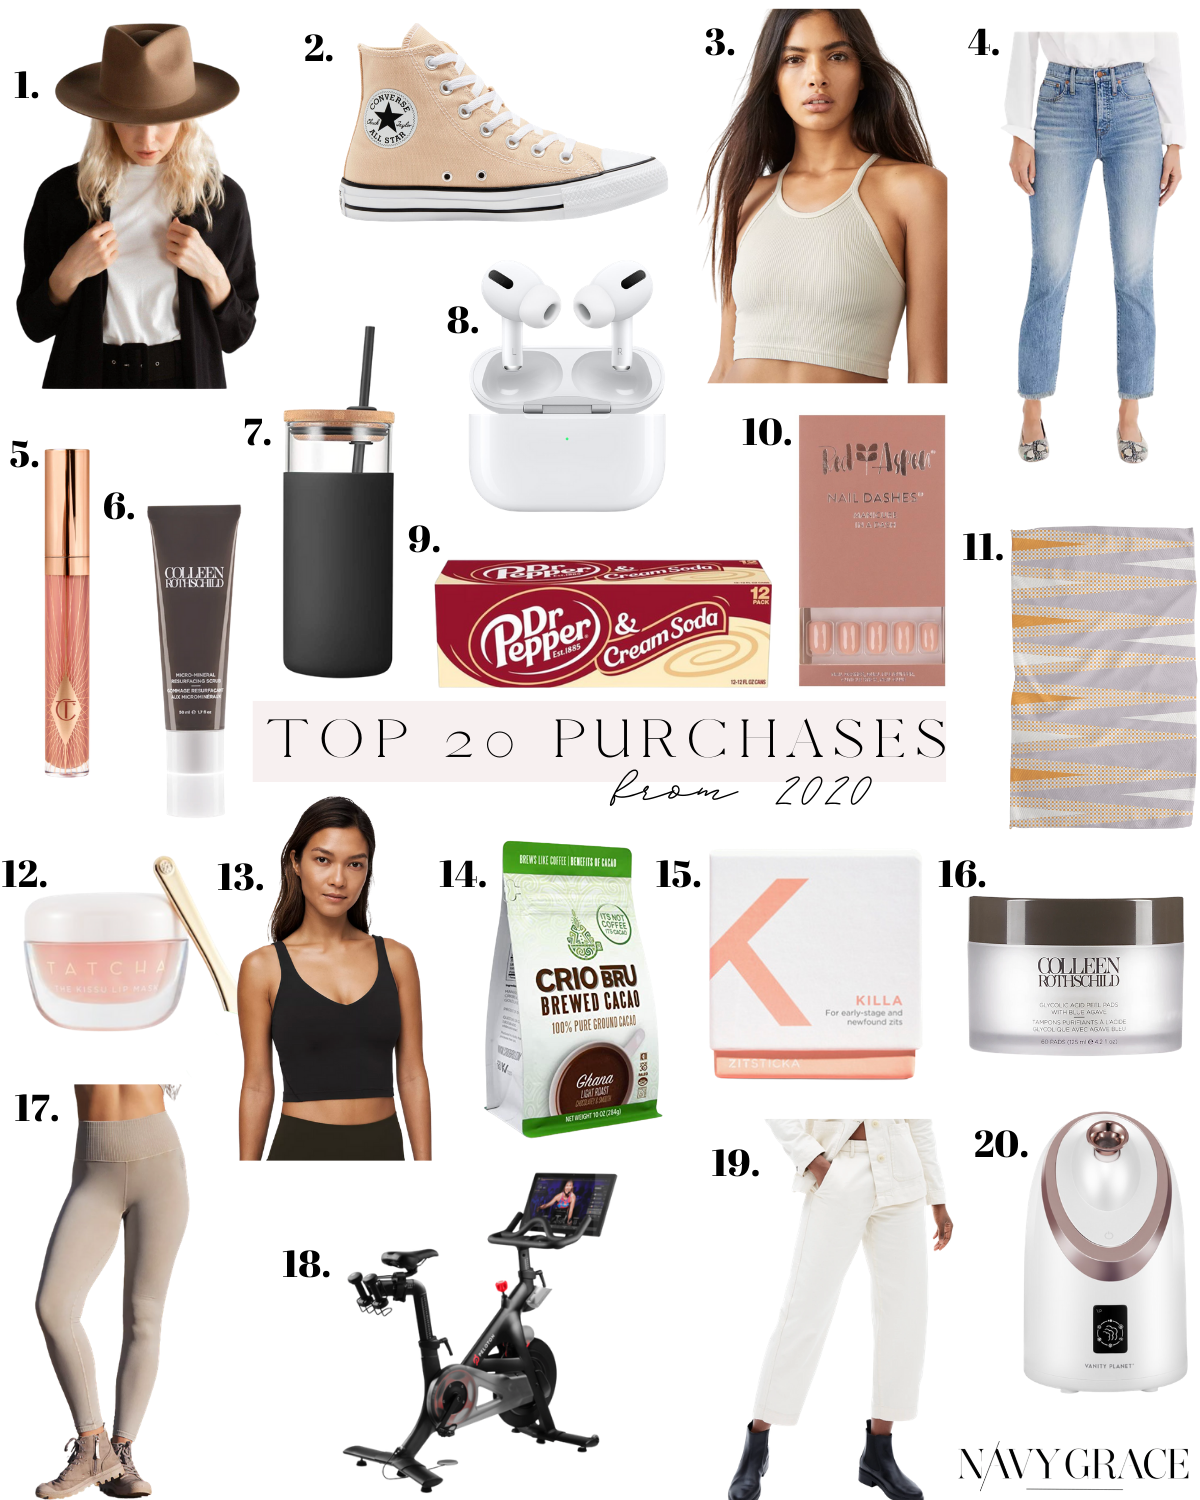 TOP 20 PURCHASES FROM 2020